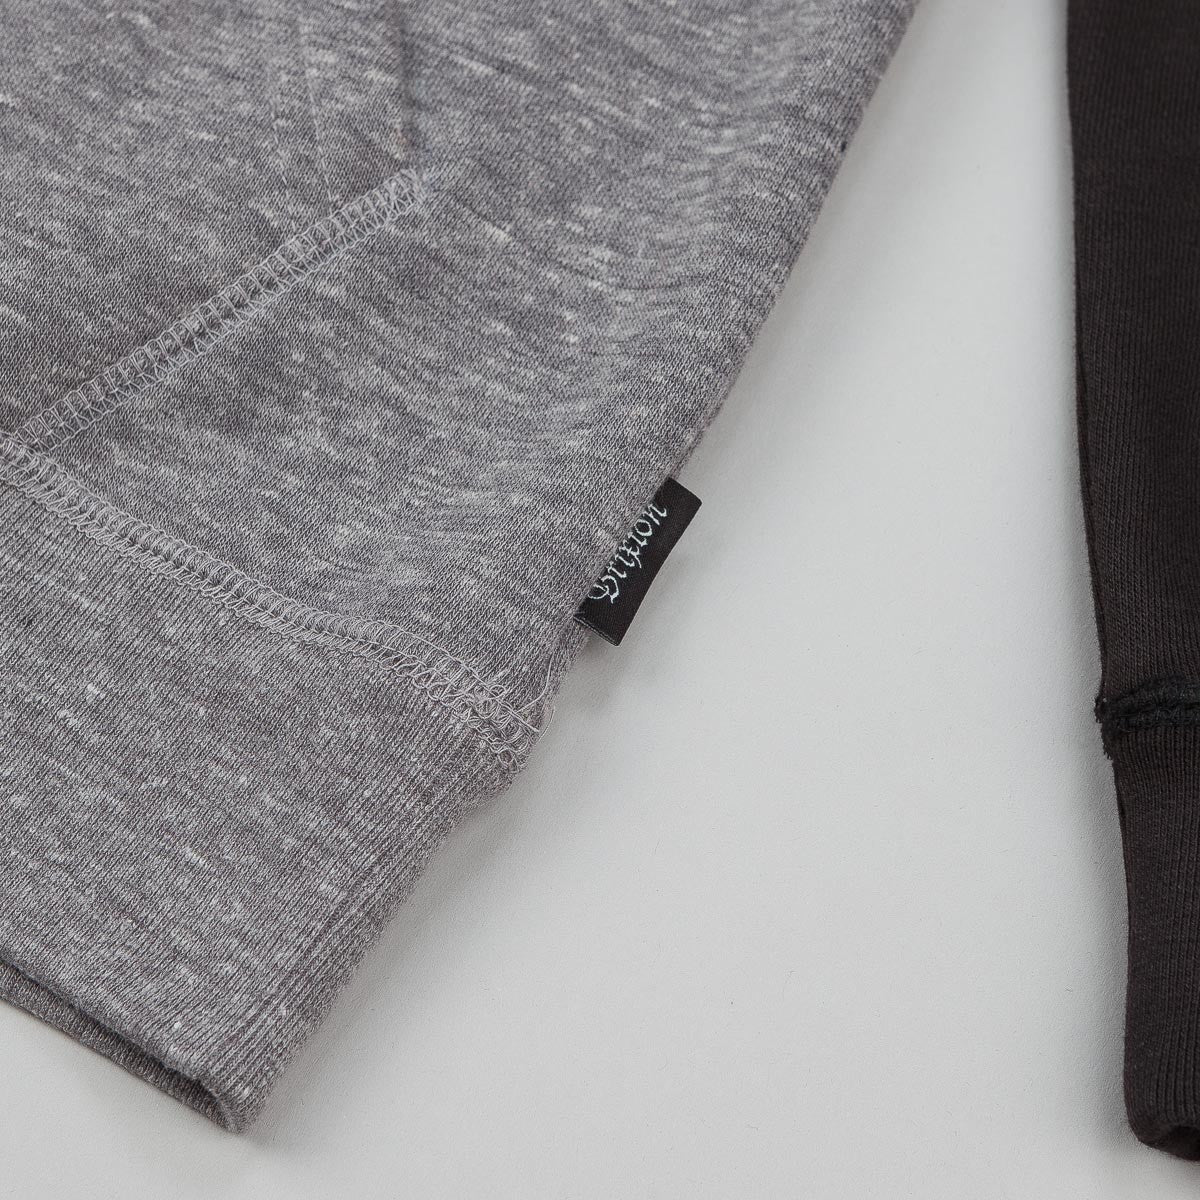 Brixton Wilkinson Hooded Sweatshirt - Heather Grey / Black